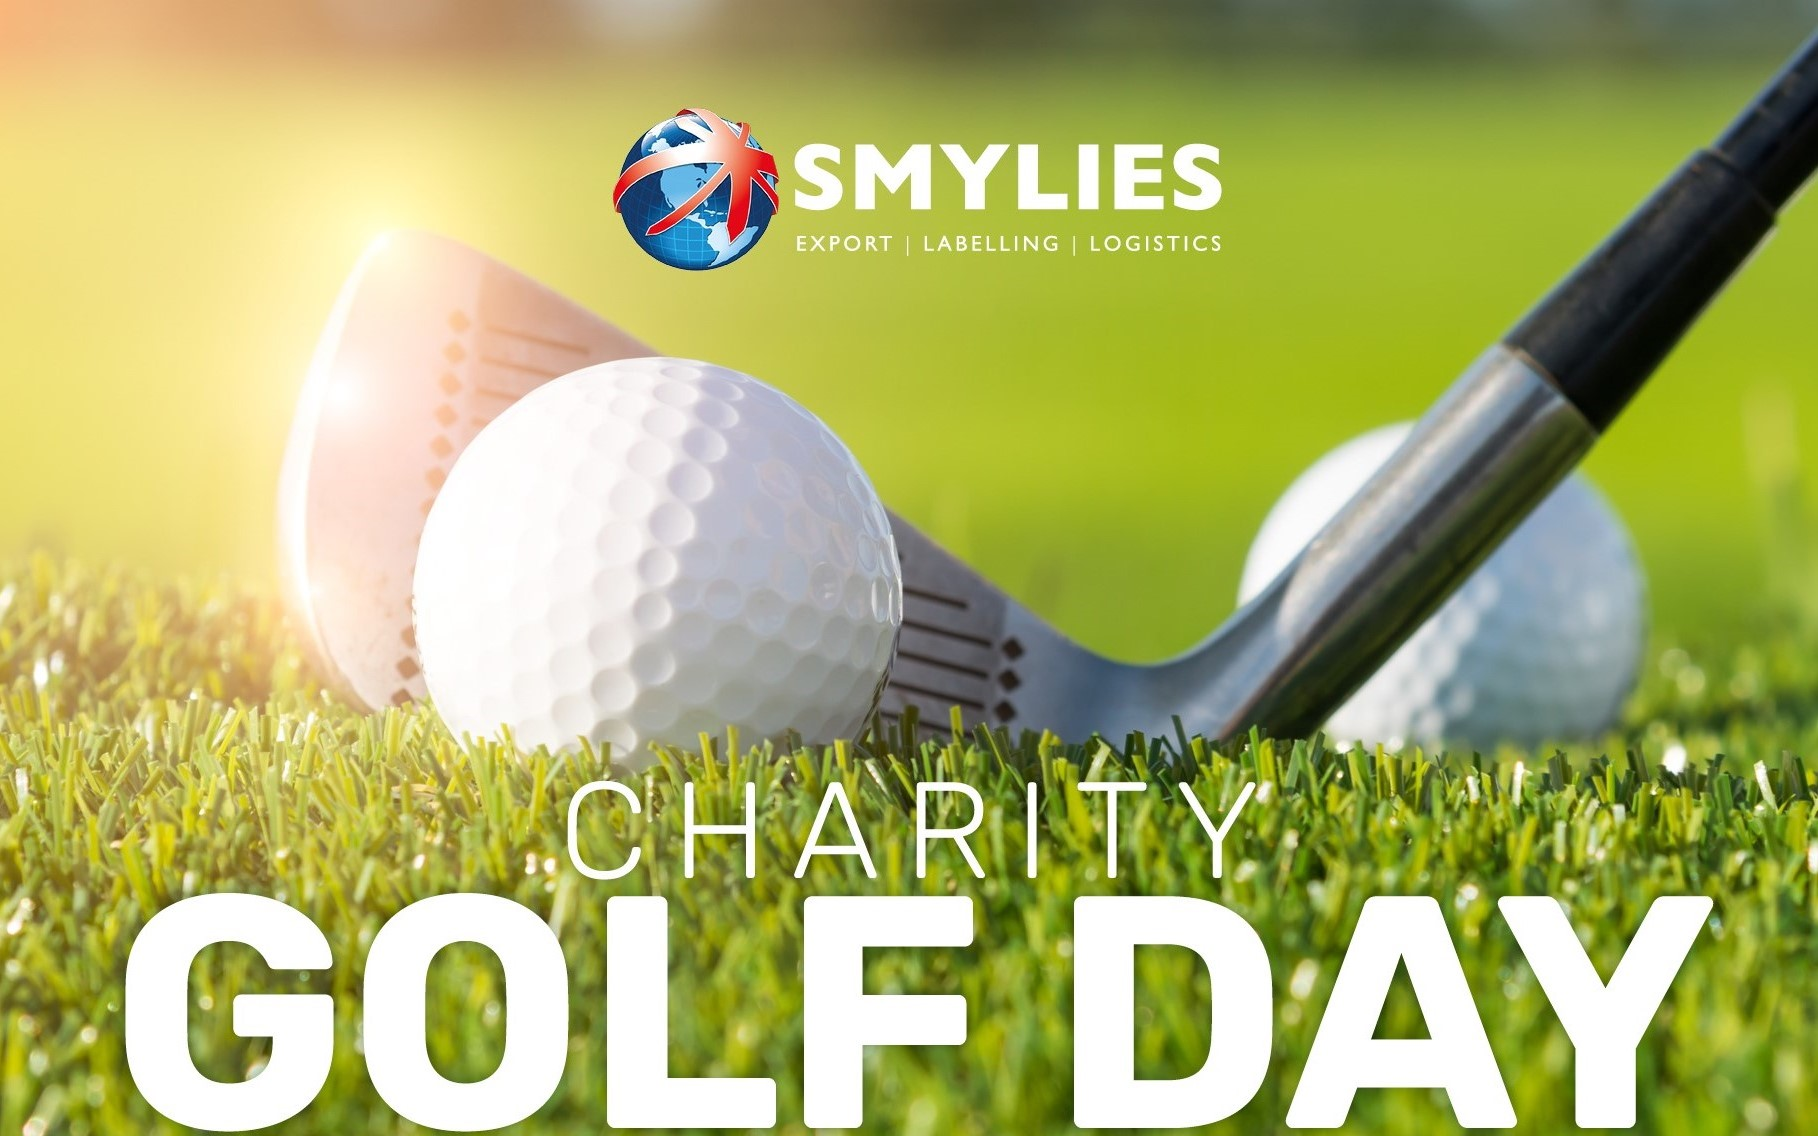 Join Smylies for a Charity Golf day!